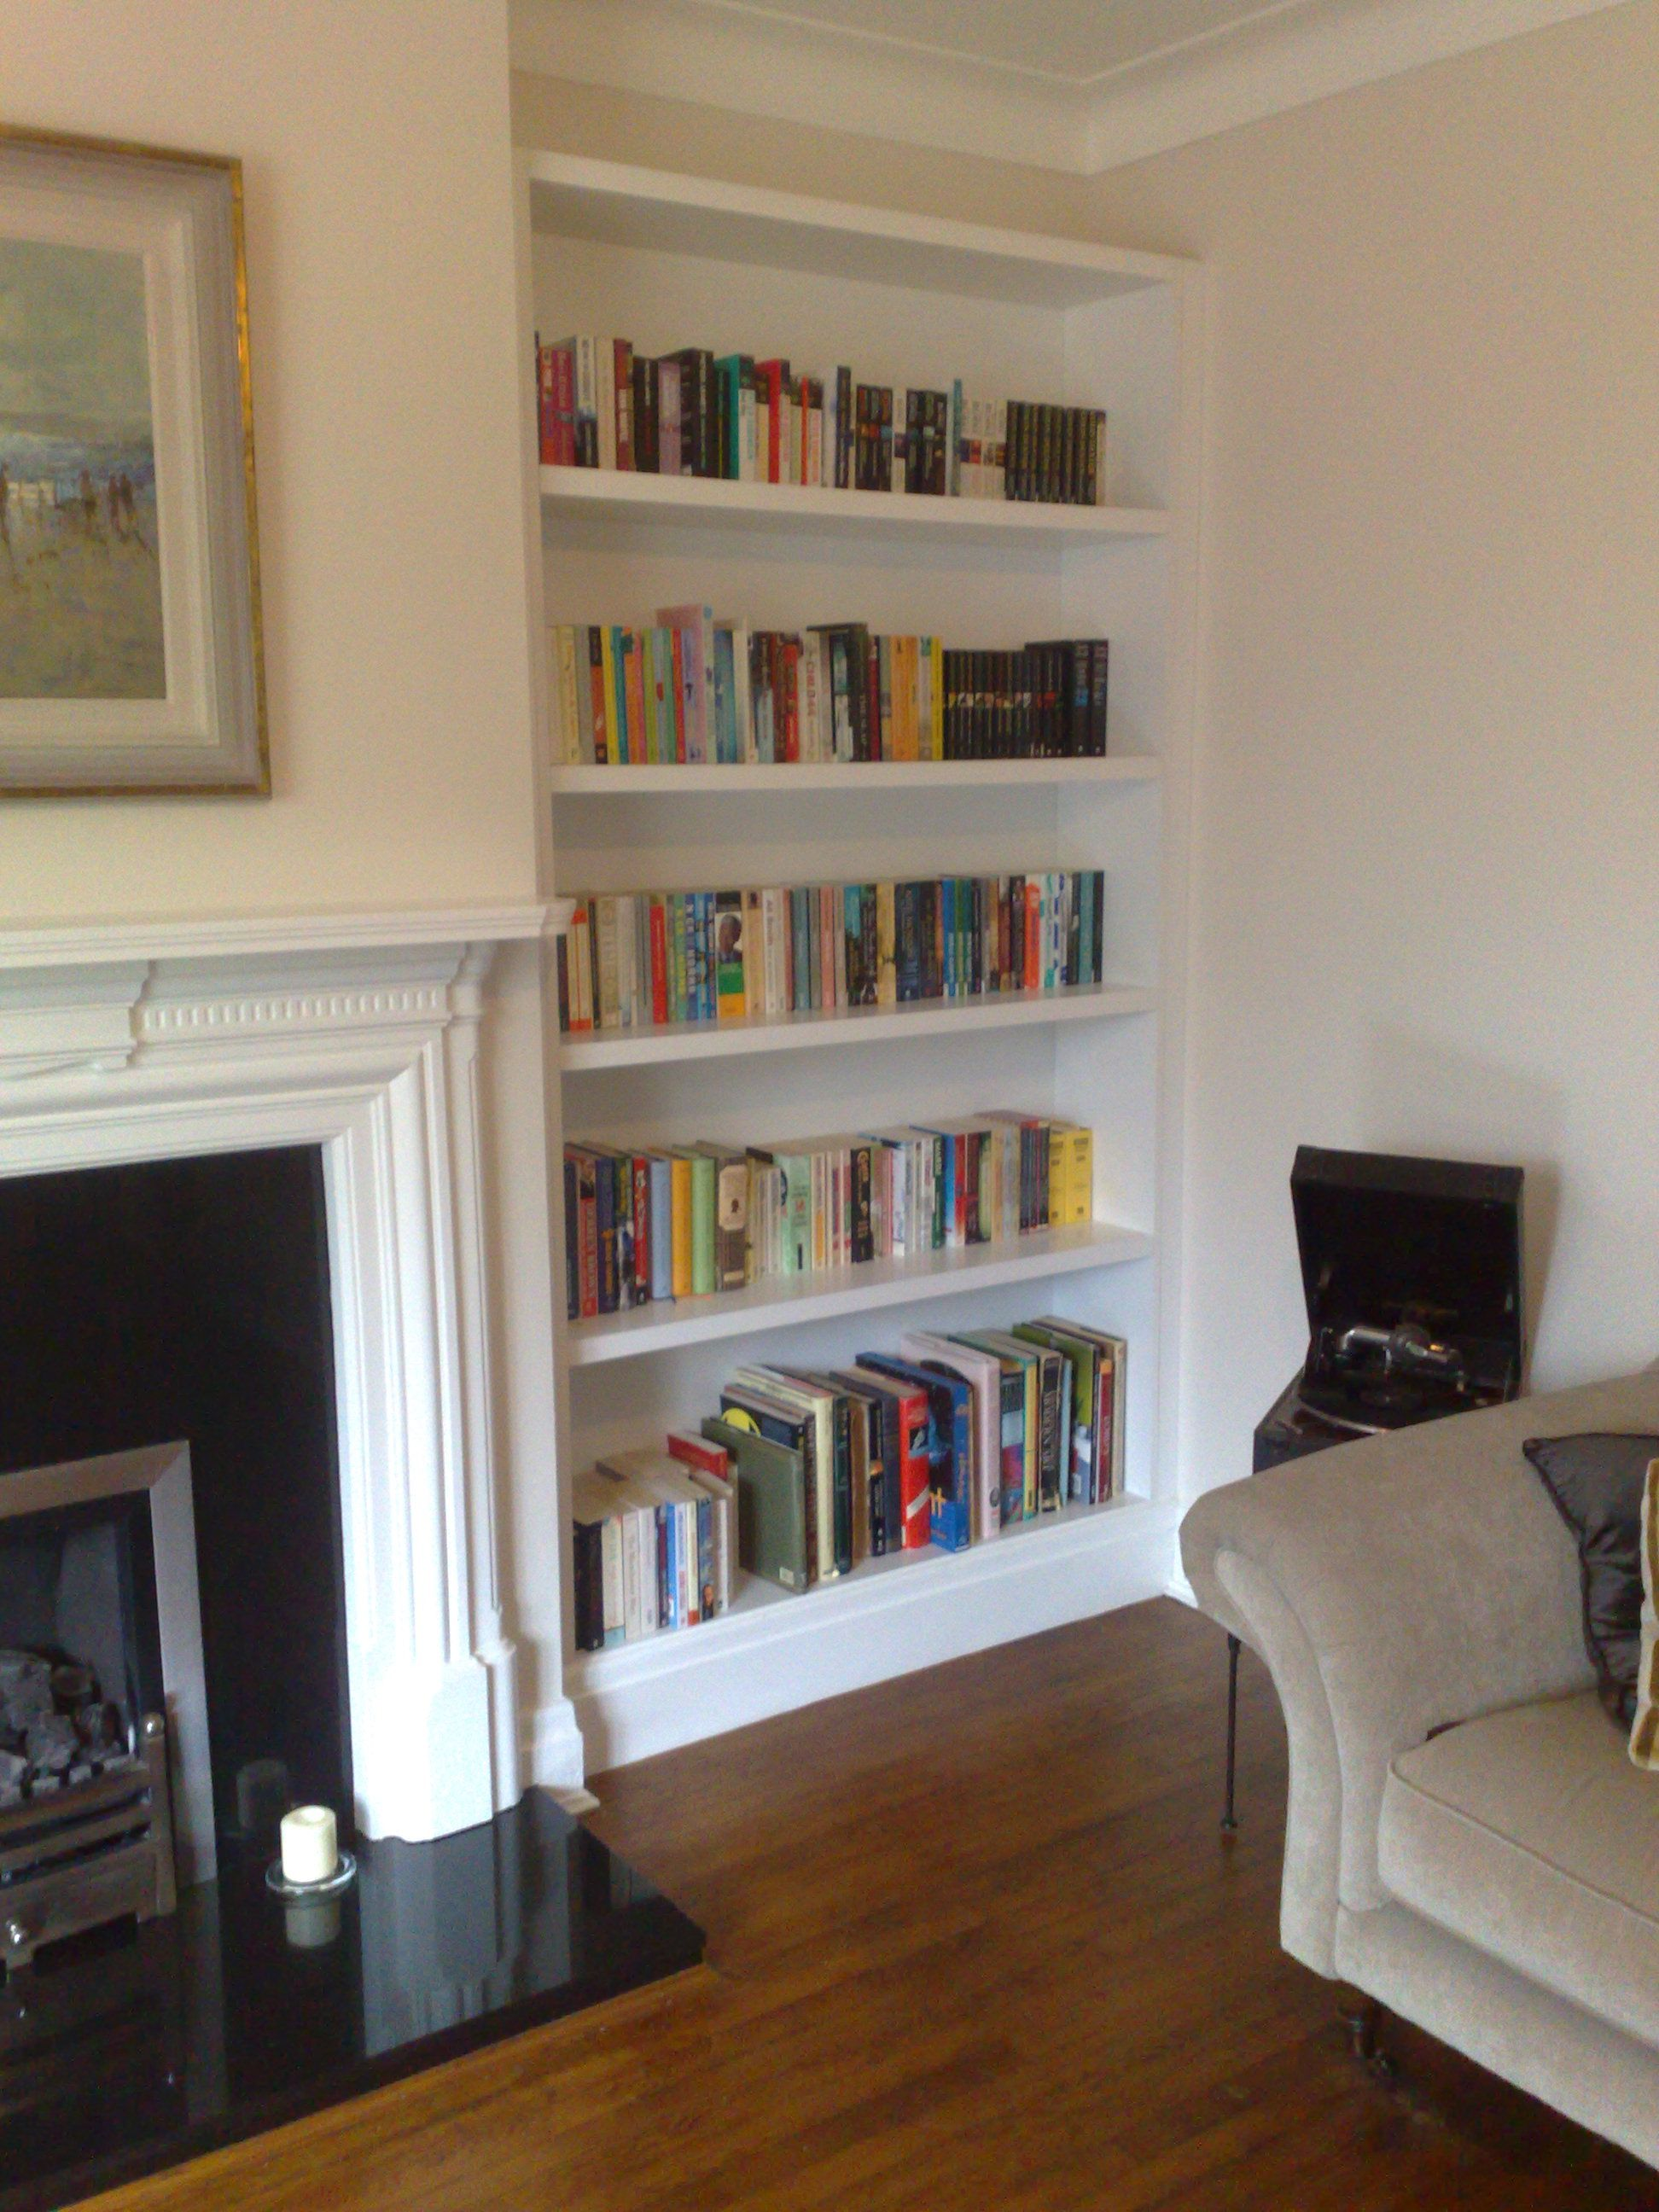 Living Room With Books: Alcove Bookshelves Of Course And A Lovely Wood Floor